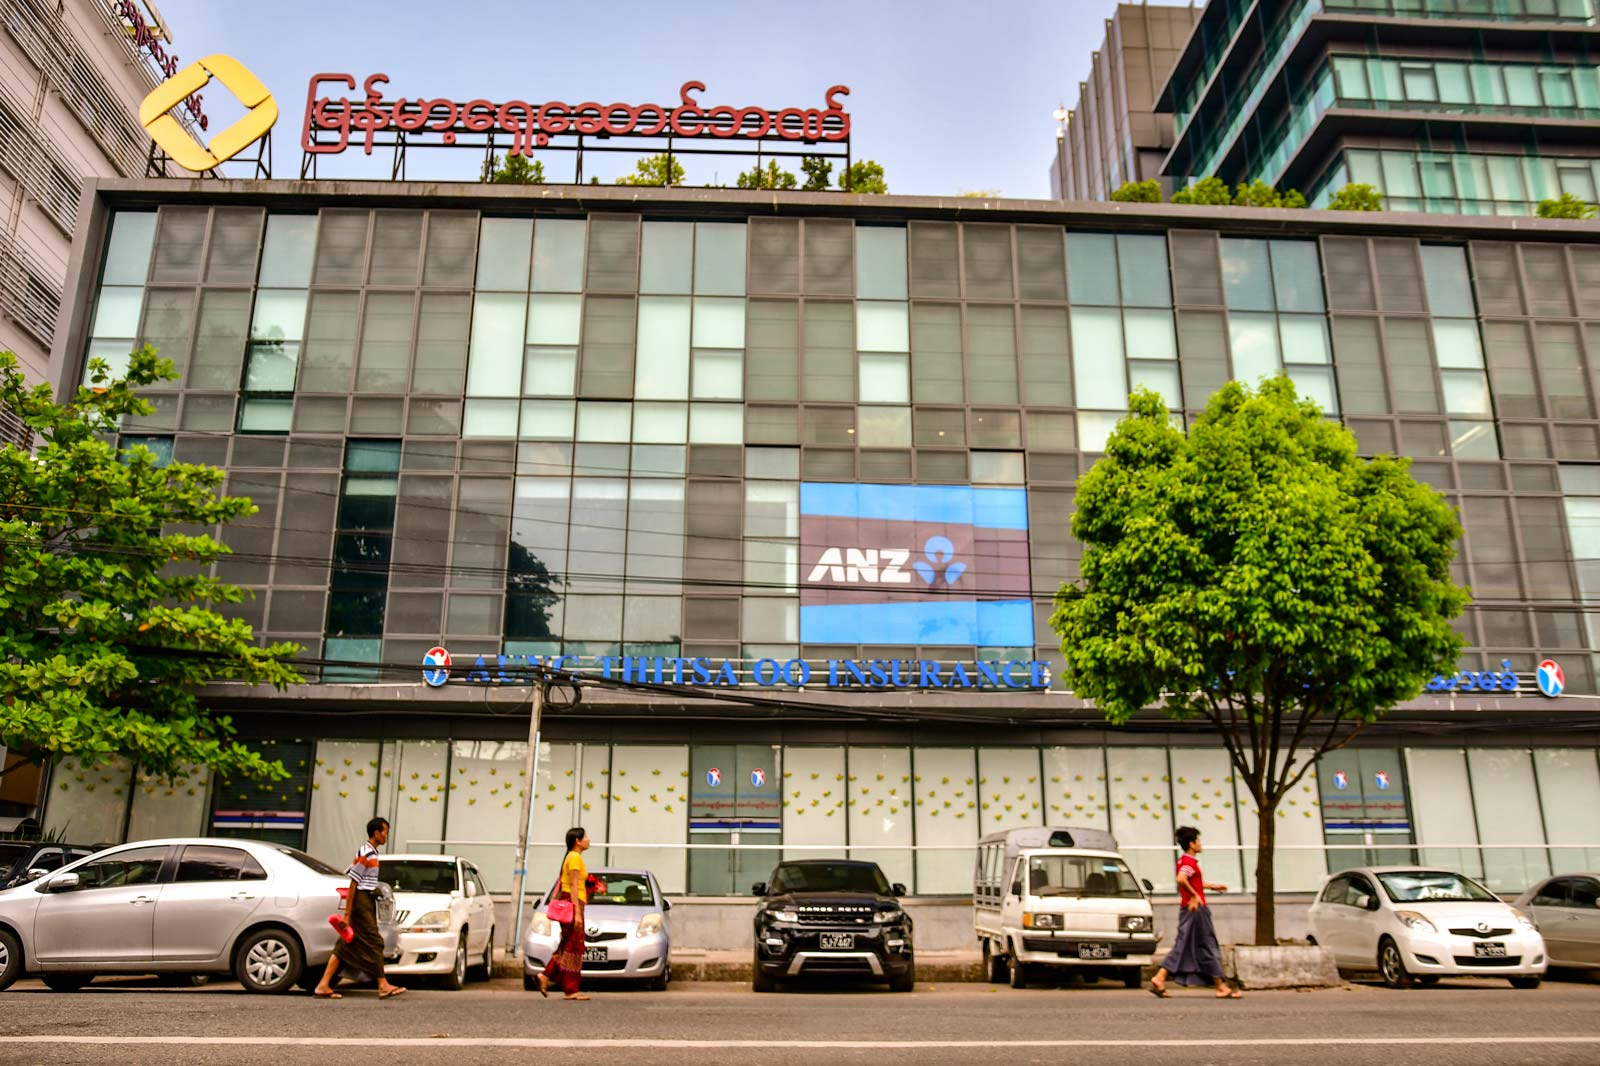 Australian bank ANZ has a presence Yangon, the commercial capital of Myanmar. ANZ's recent withdrawal from Cambodia was a disappointment, according to the Australian Chamber of Commerce. Photo: Simon Roughneen